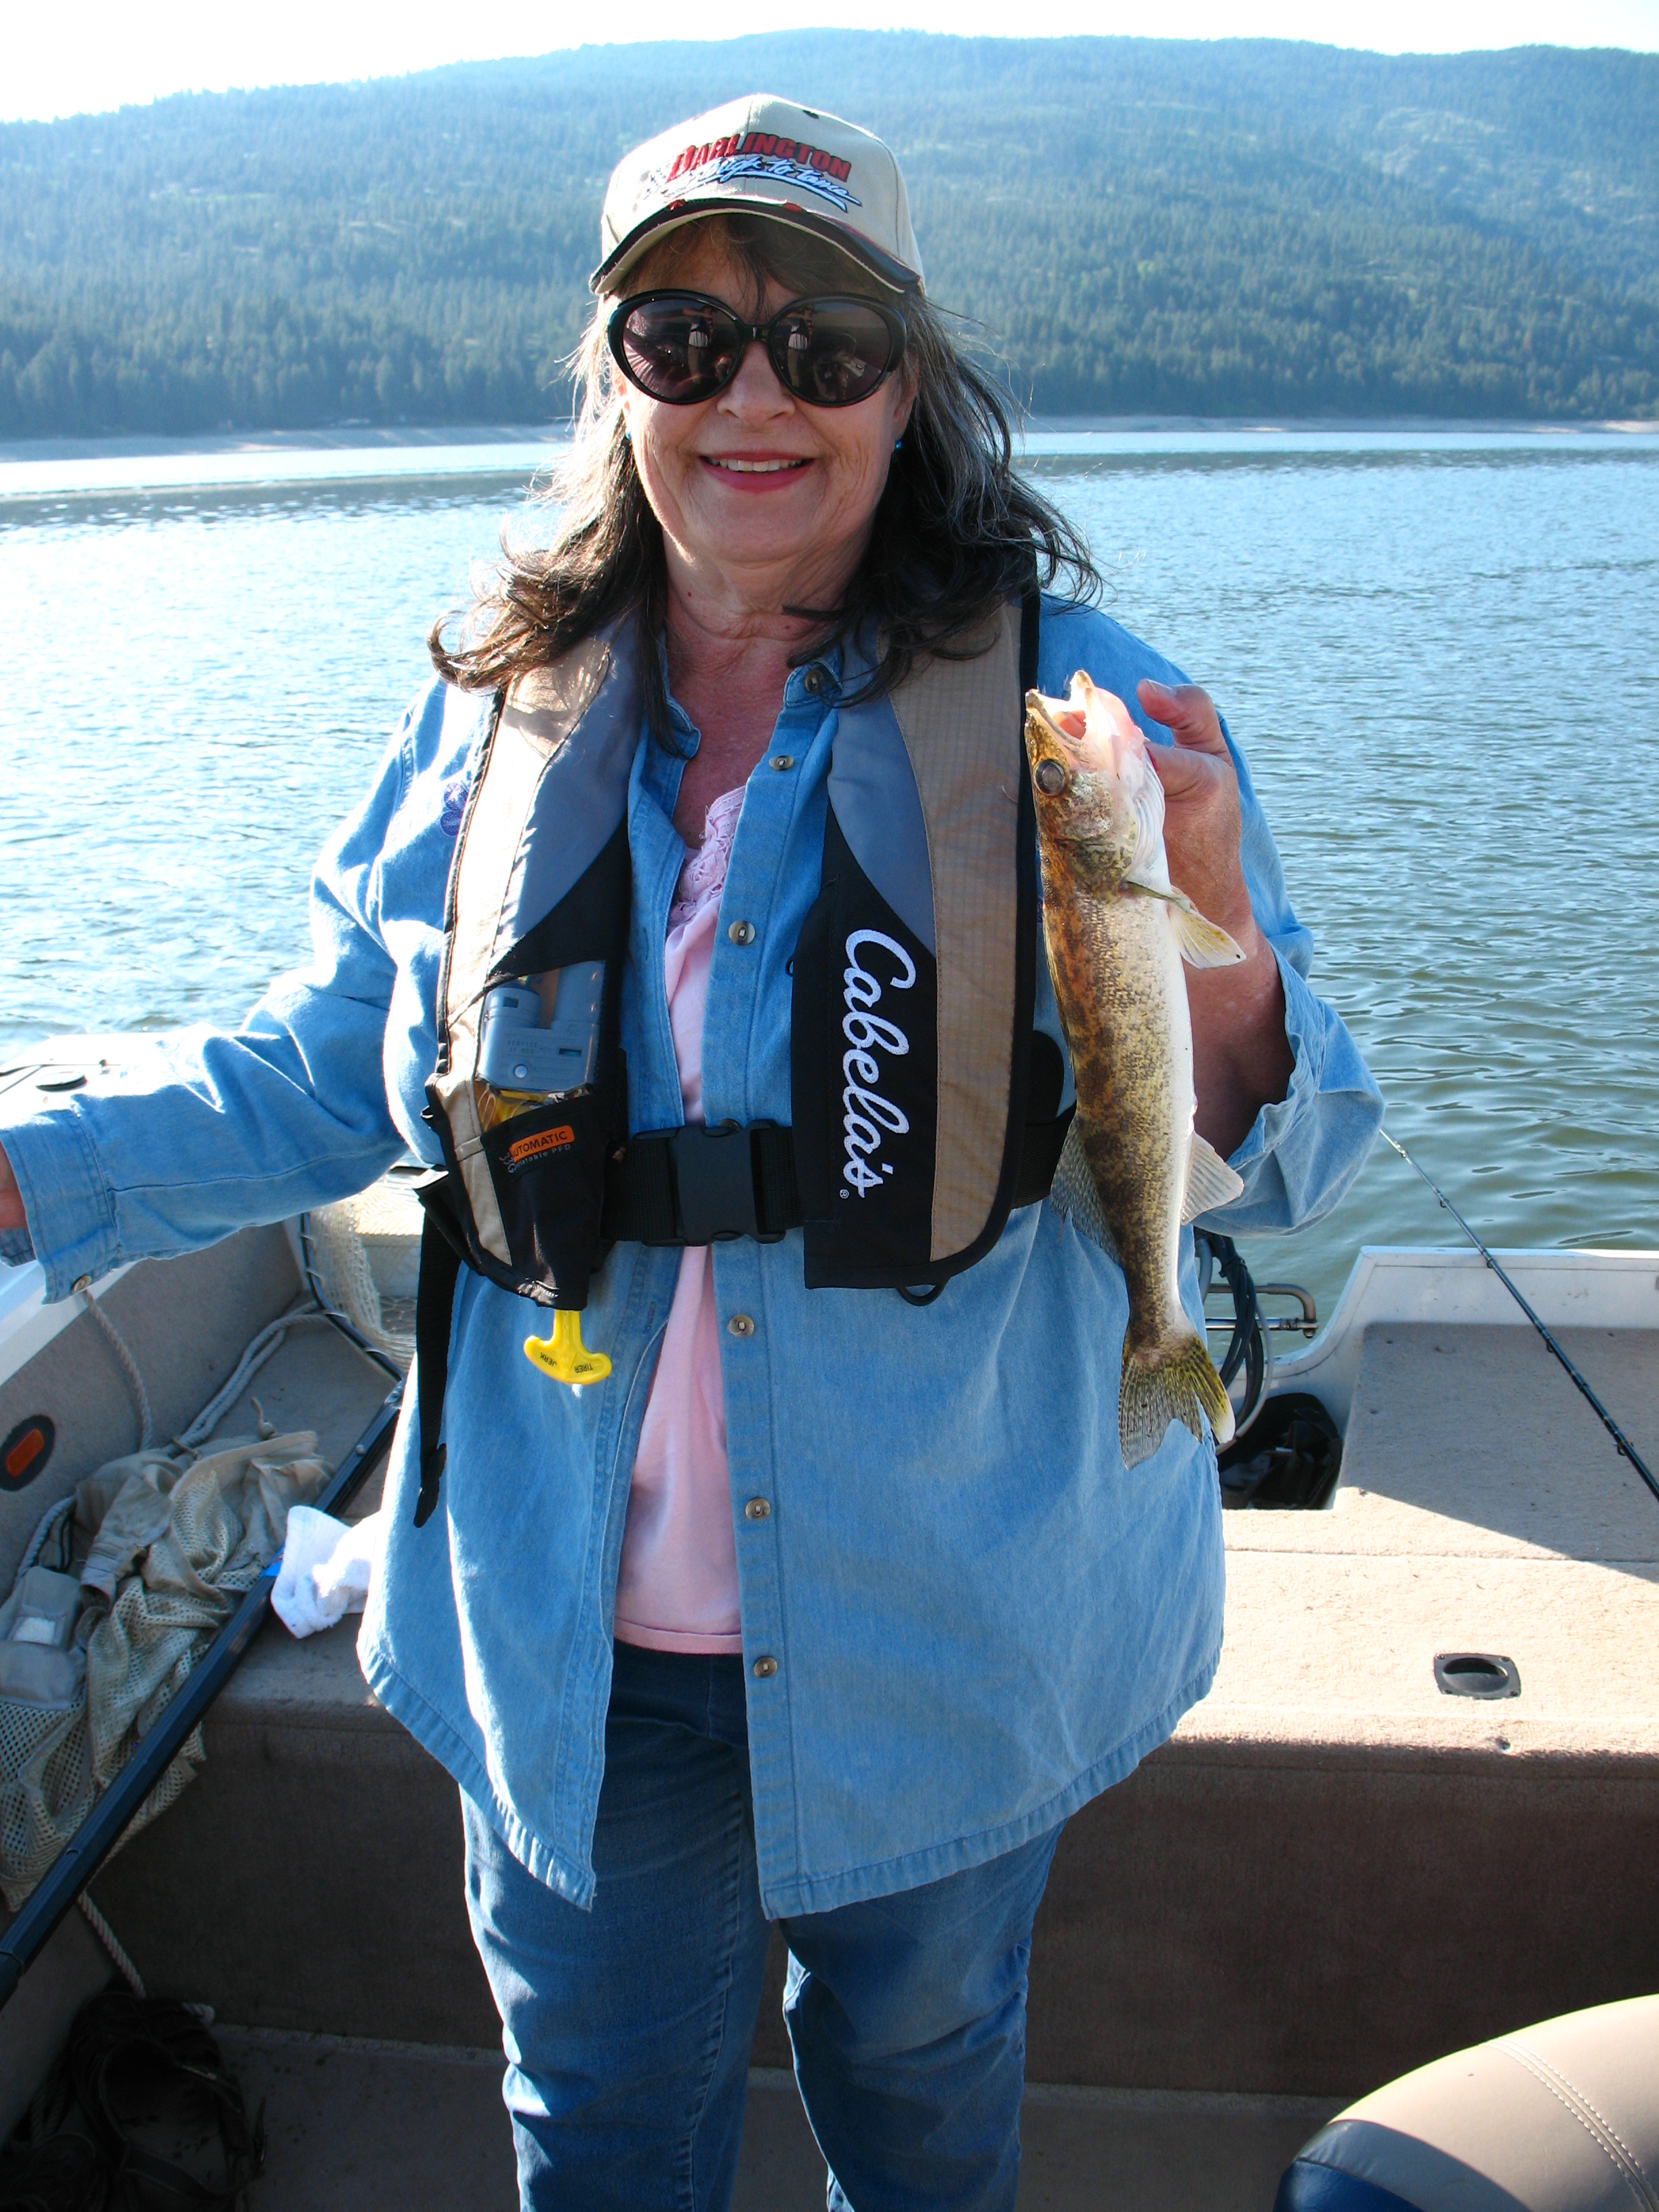 Linda's first walleye!!! Great job Lyle and Mark for getting her on to this fish!